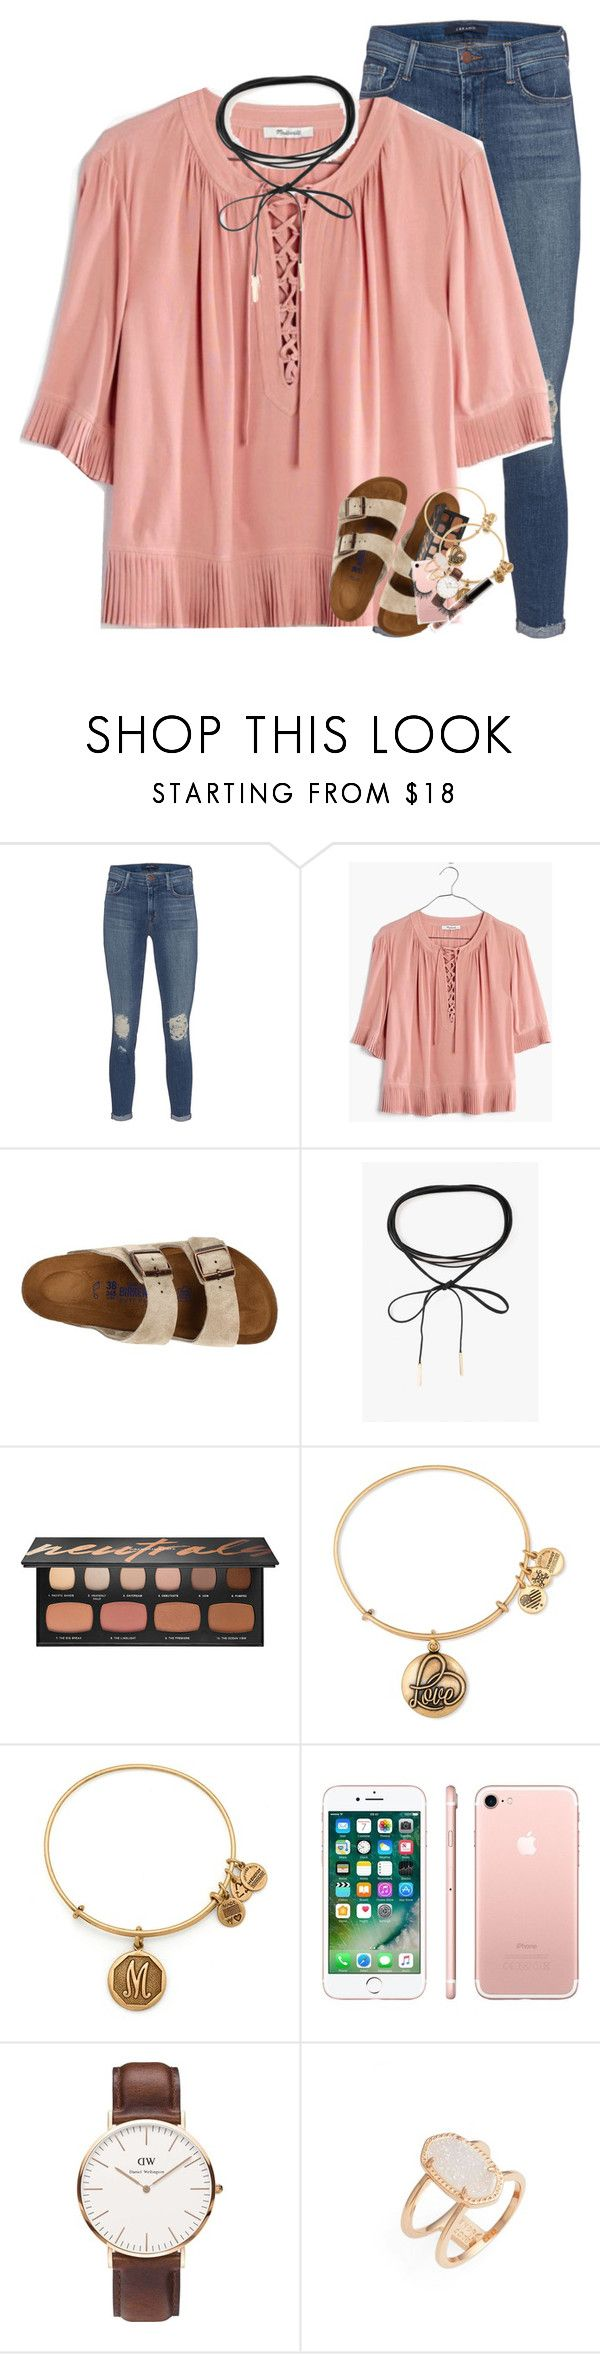 """""""When you treat me like that"""" by summerdreaming7 ❤ liked on Polyvore featuring J Brand, Madewell, Birkenstock, Azalea, Bare Escentuals, Alex and Ani, Apple, Daniel Wellington and Kendra Scott"""